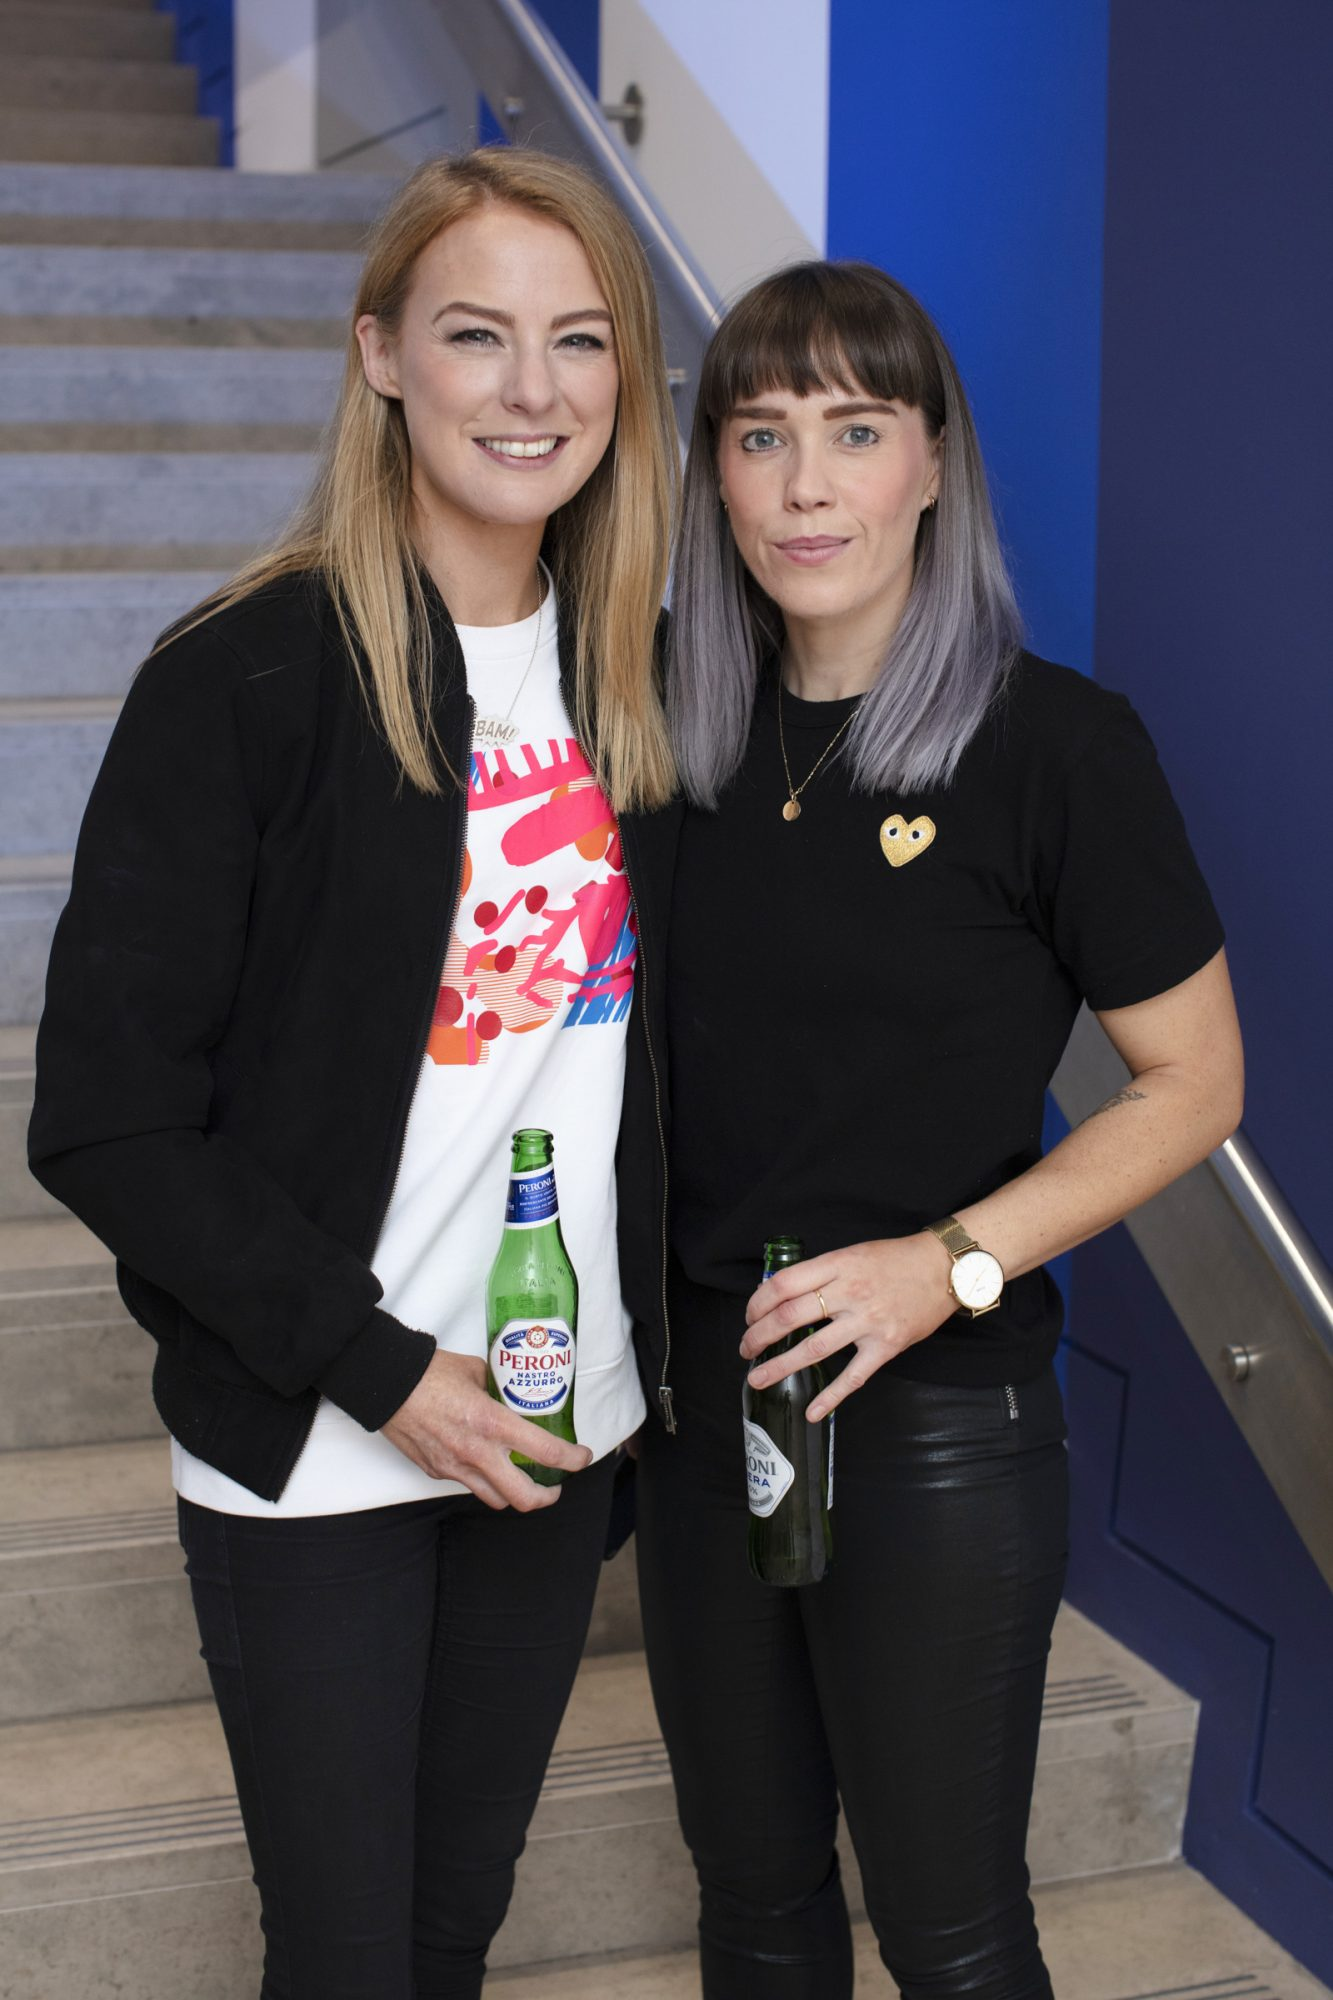 Jill Deering & Gill Henderson pictured at the launch of The House of Peroni, which is open at the RHA in Dublin until Sunday, 1st September 2019. This year's residency sees the RHA transformed into a stylish Peroni inspired experience, filled with food, drink and design. www.thehouseofperoni.com Photo: Anthony Woods.